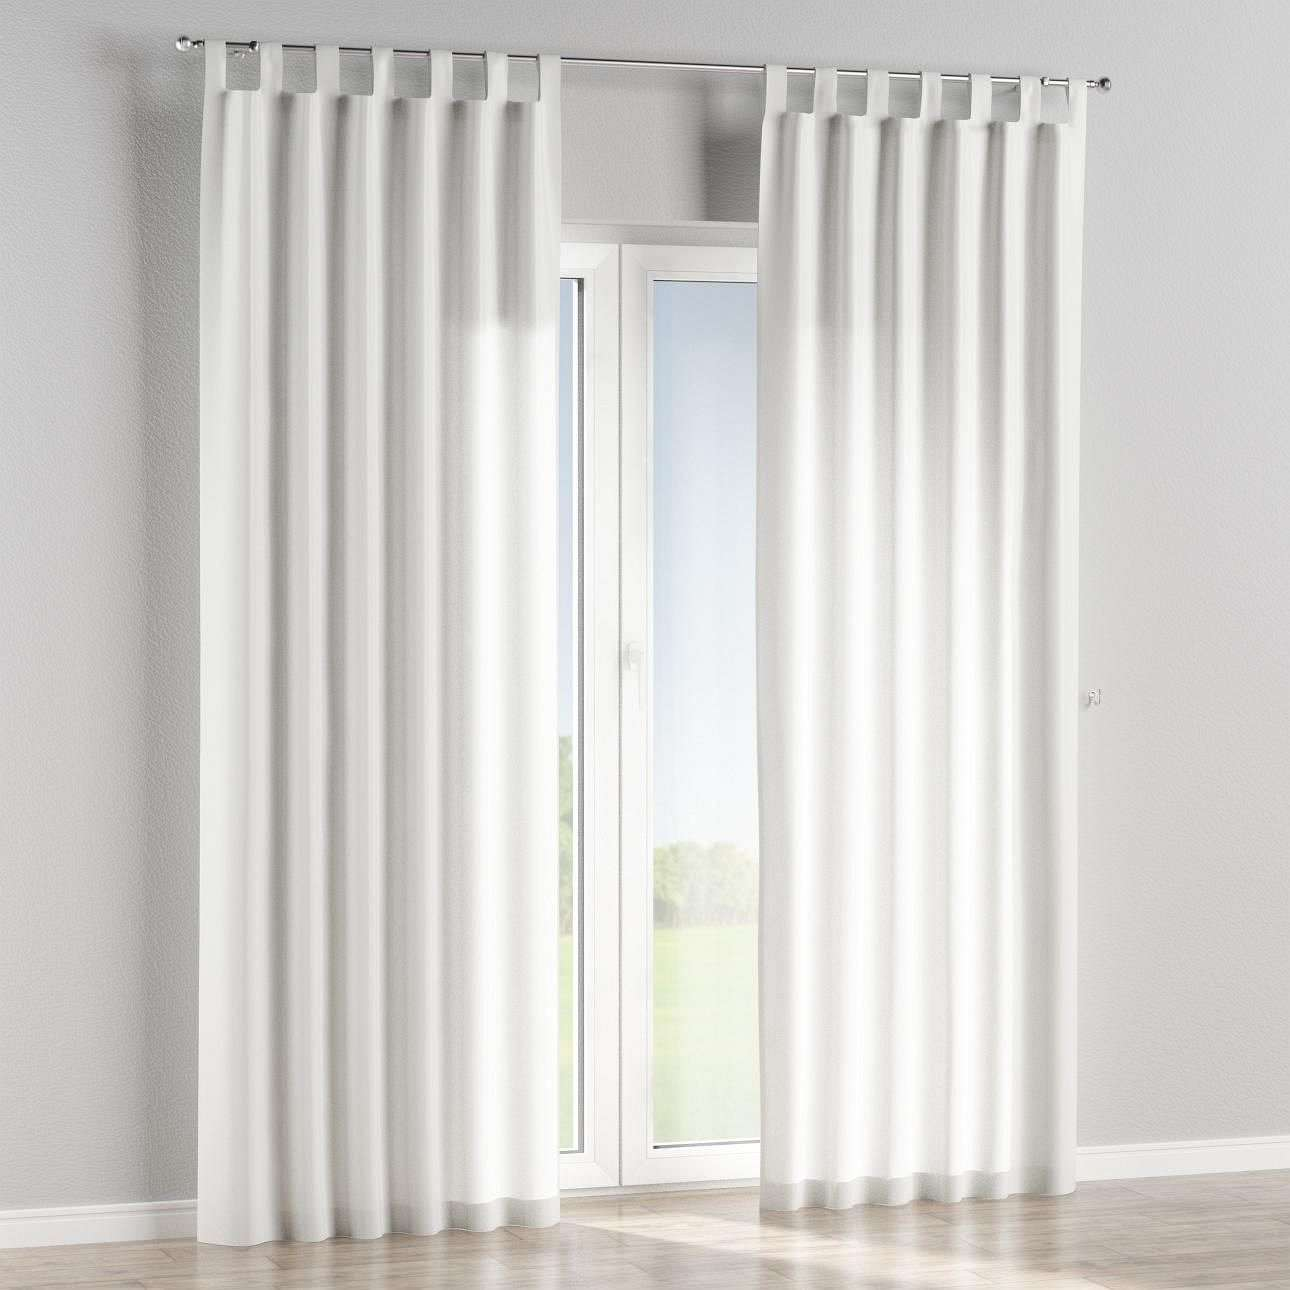 Tab top lined curtains in collection Norge, fabric: 140-84